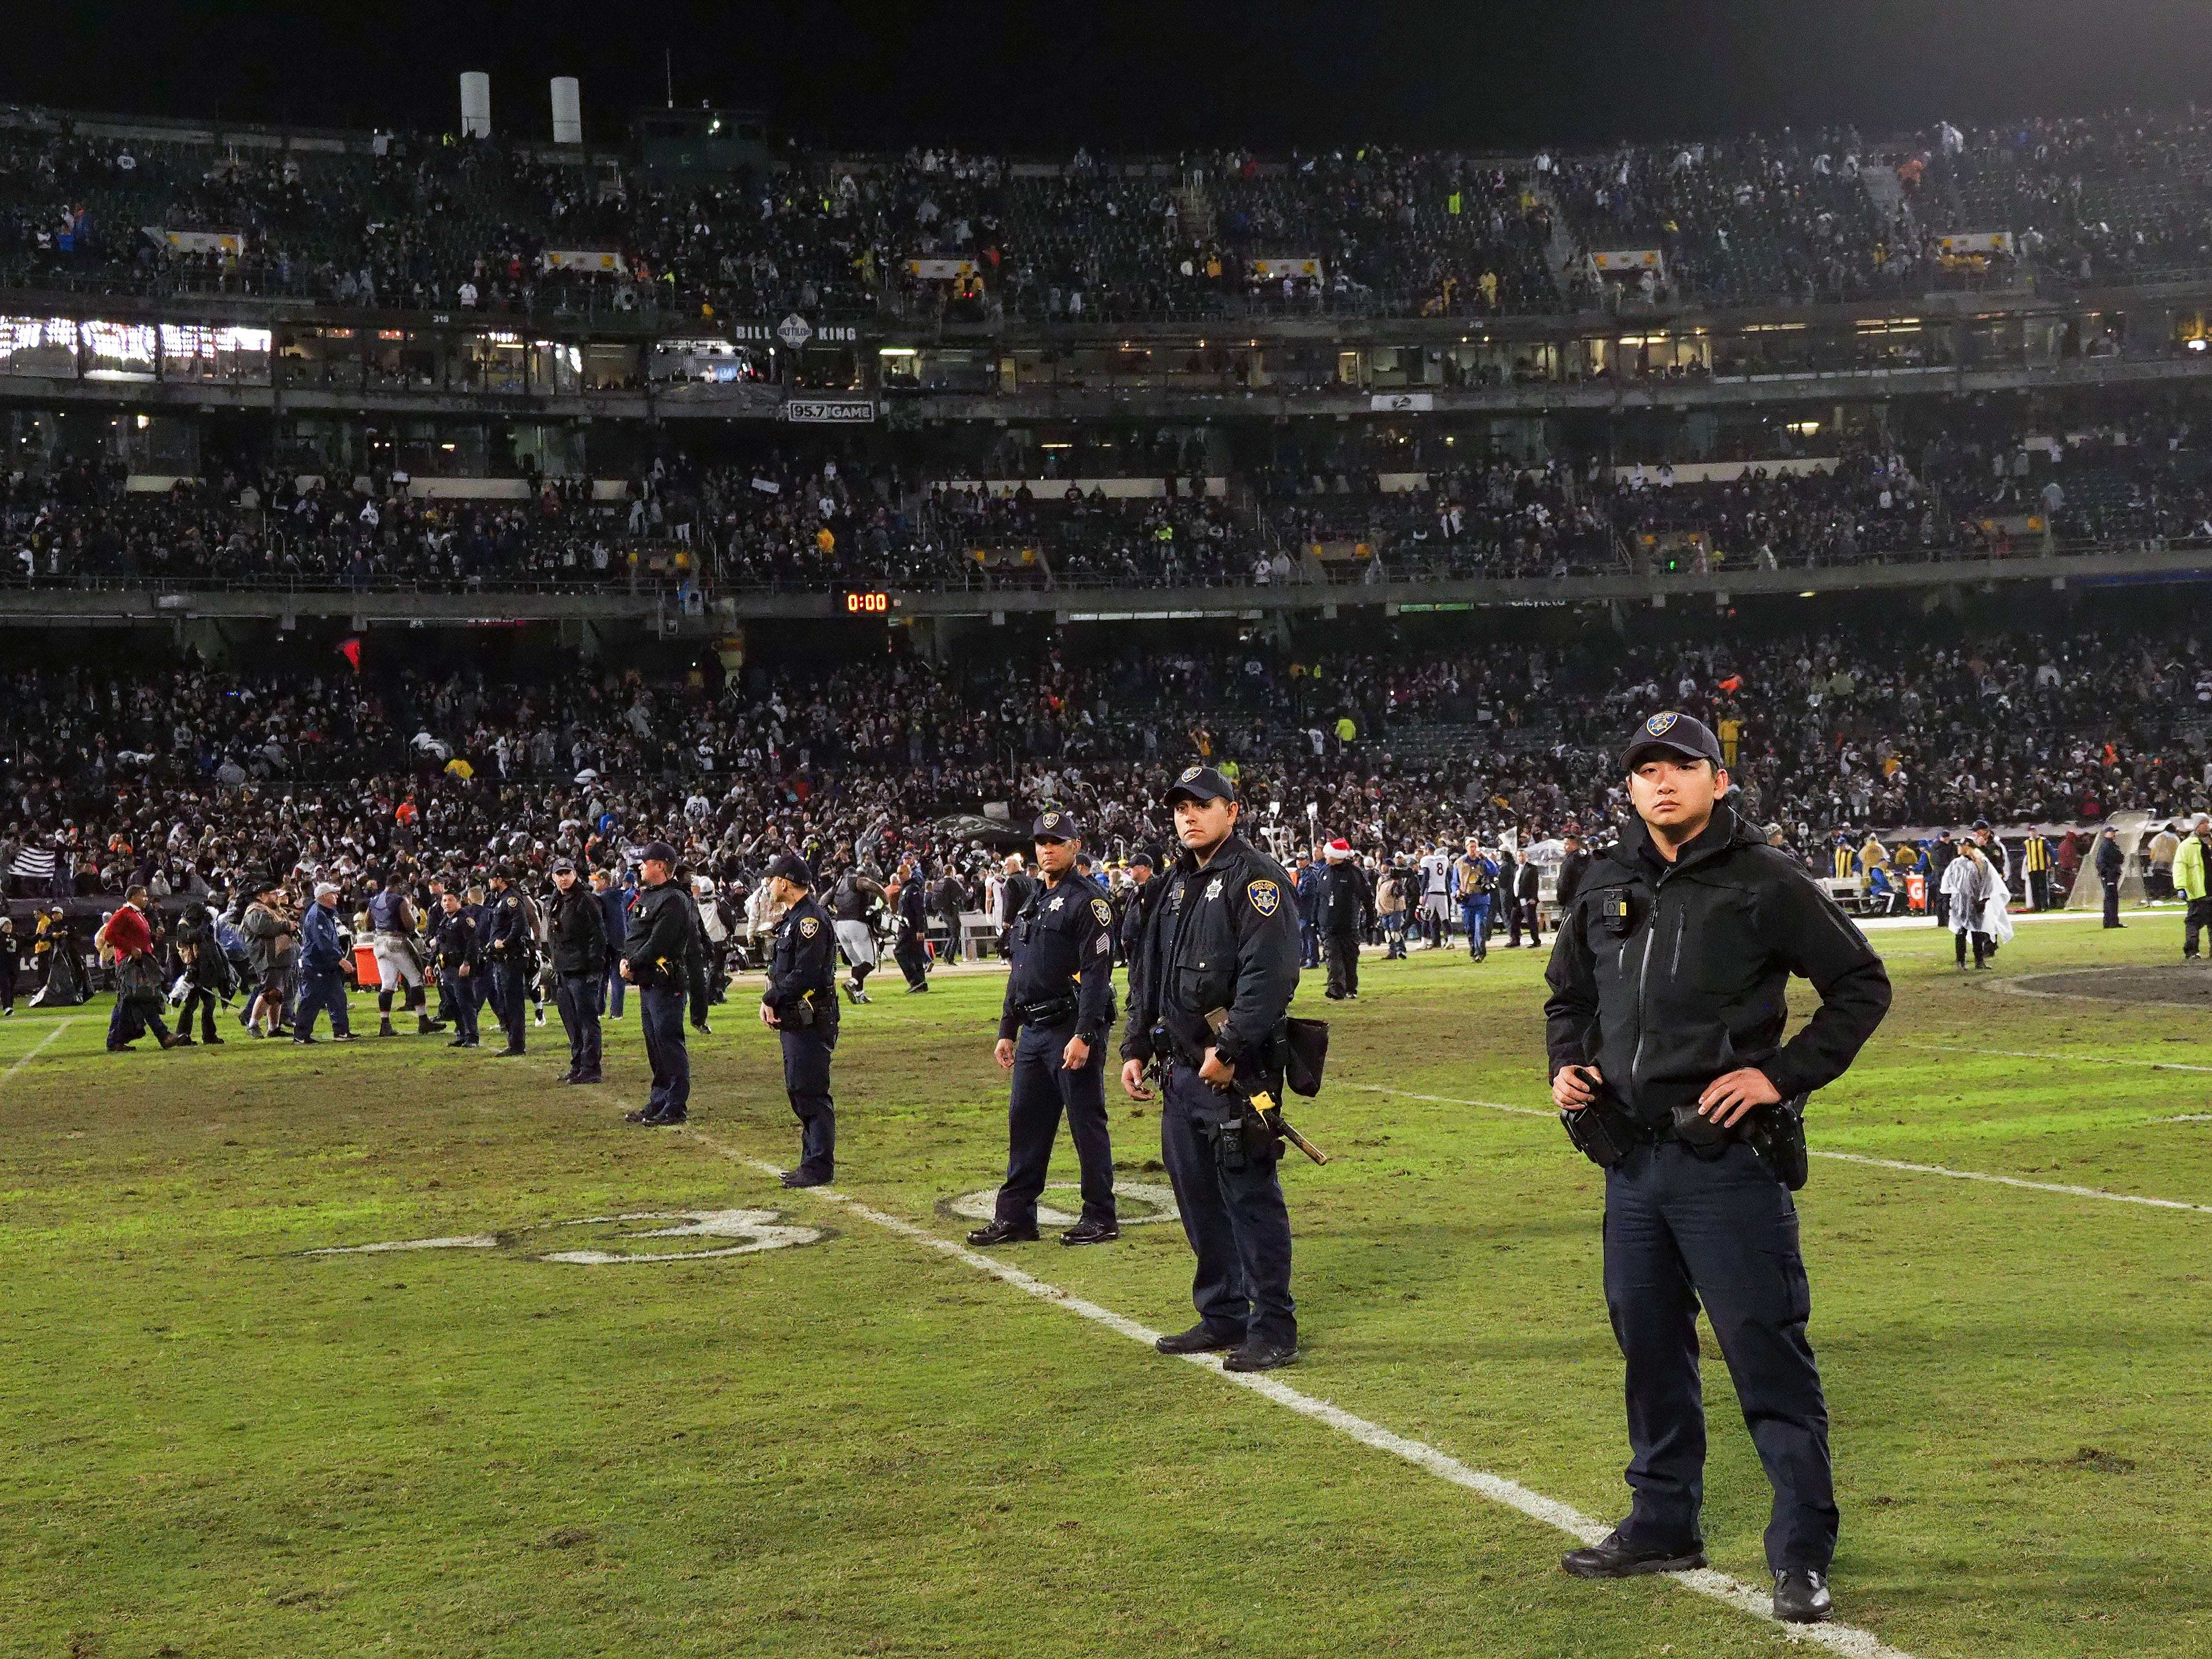 Police presence on the field after the Oakland Raiders' 27-14 win over the Denver Broncos in what might be the final NFL game at the Oakland Coliseum.